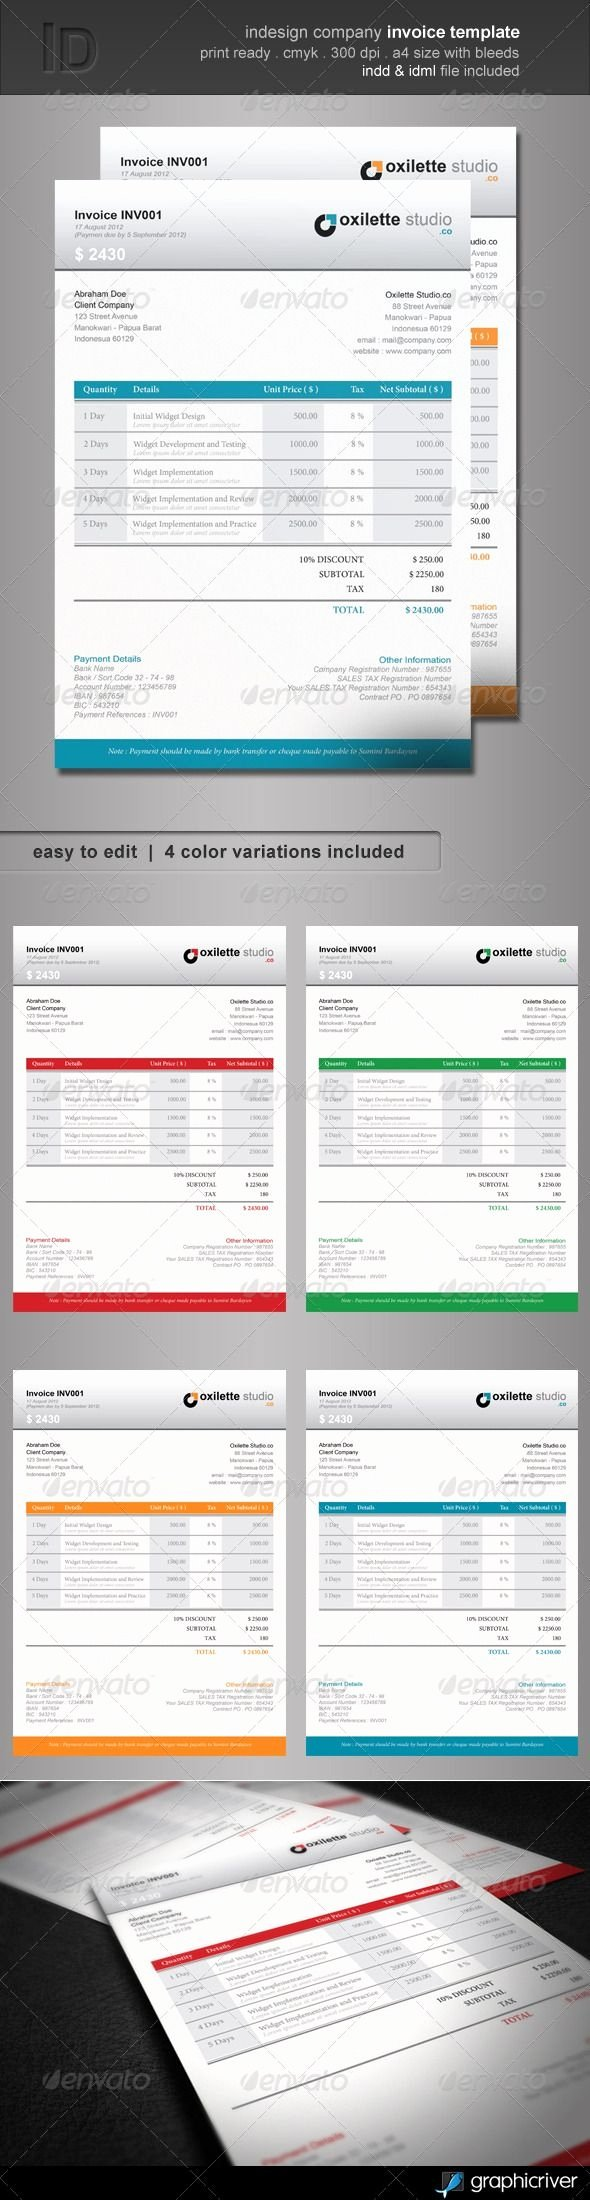 Free Indesign Invoice Template New Indesign Invoice Template Free Invoice Template Ideas